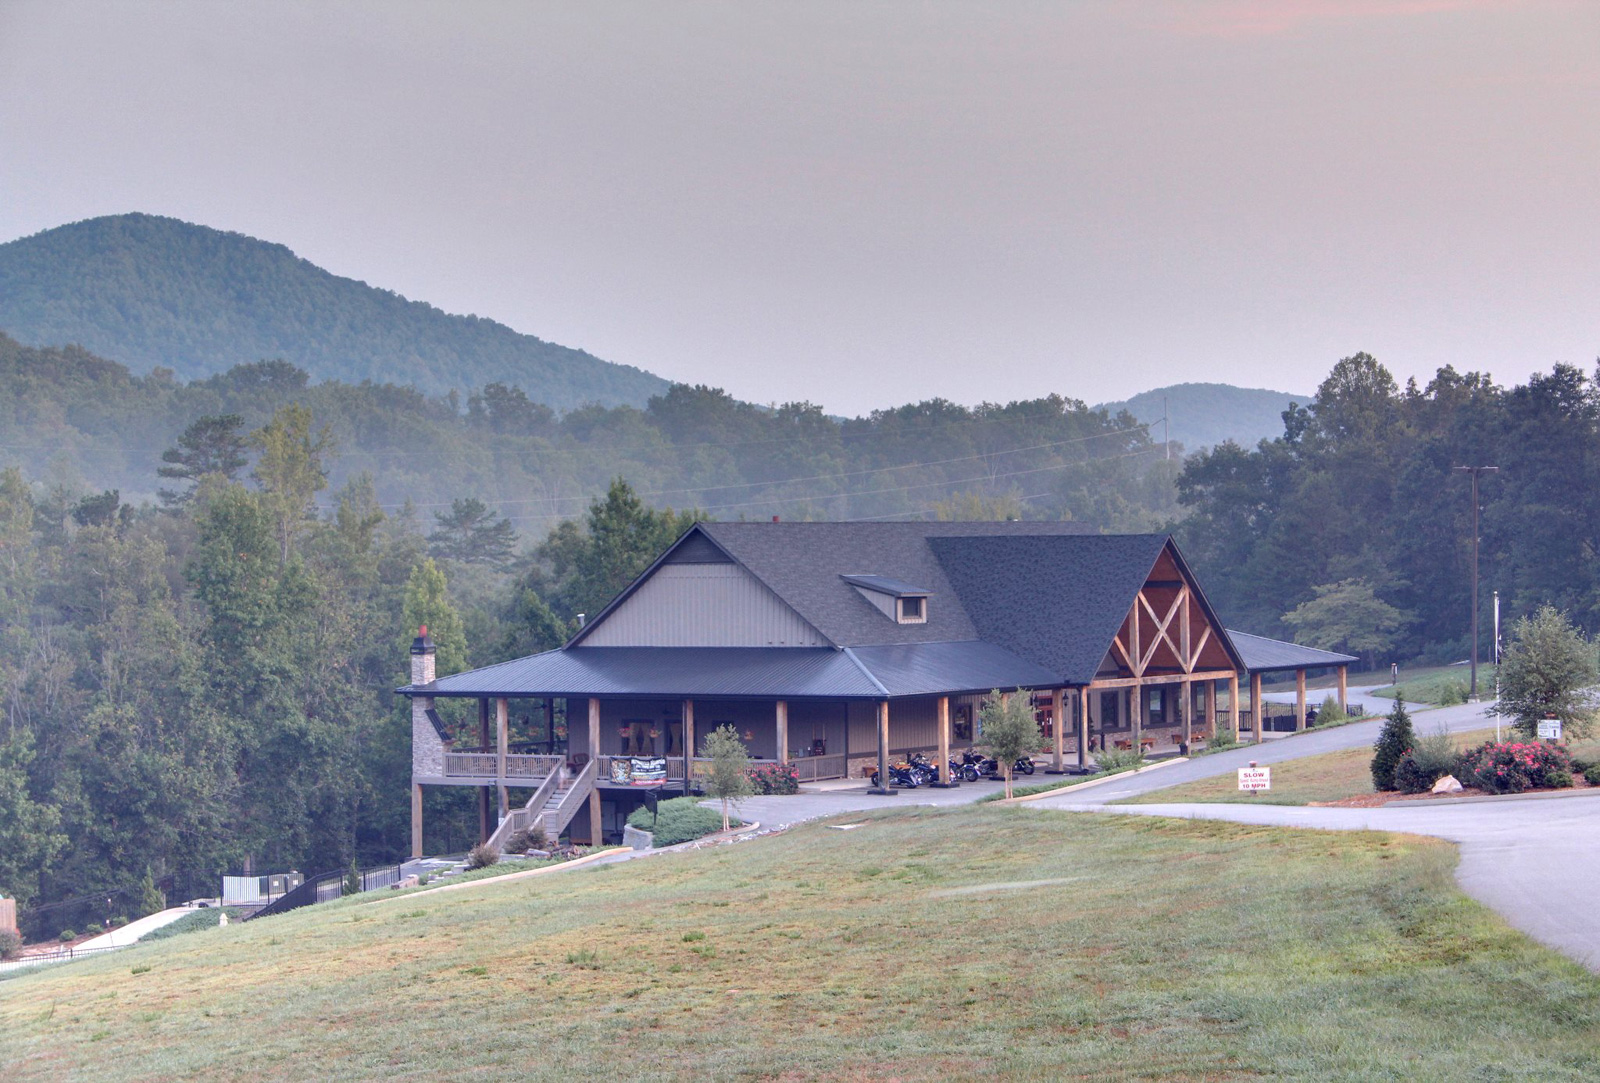 Copperhead Lodge in Blairsville, Georgia